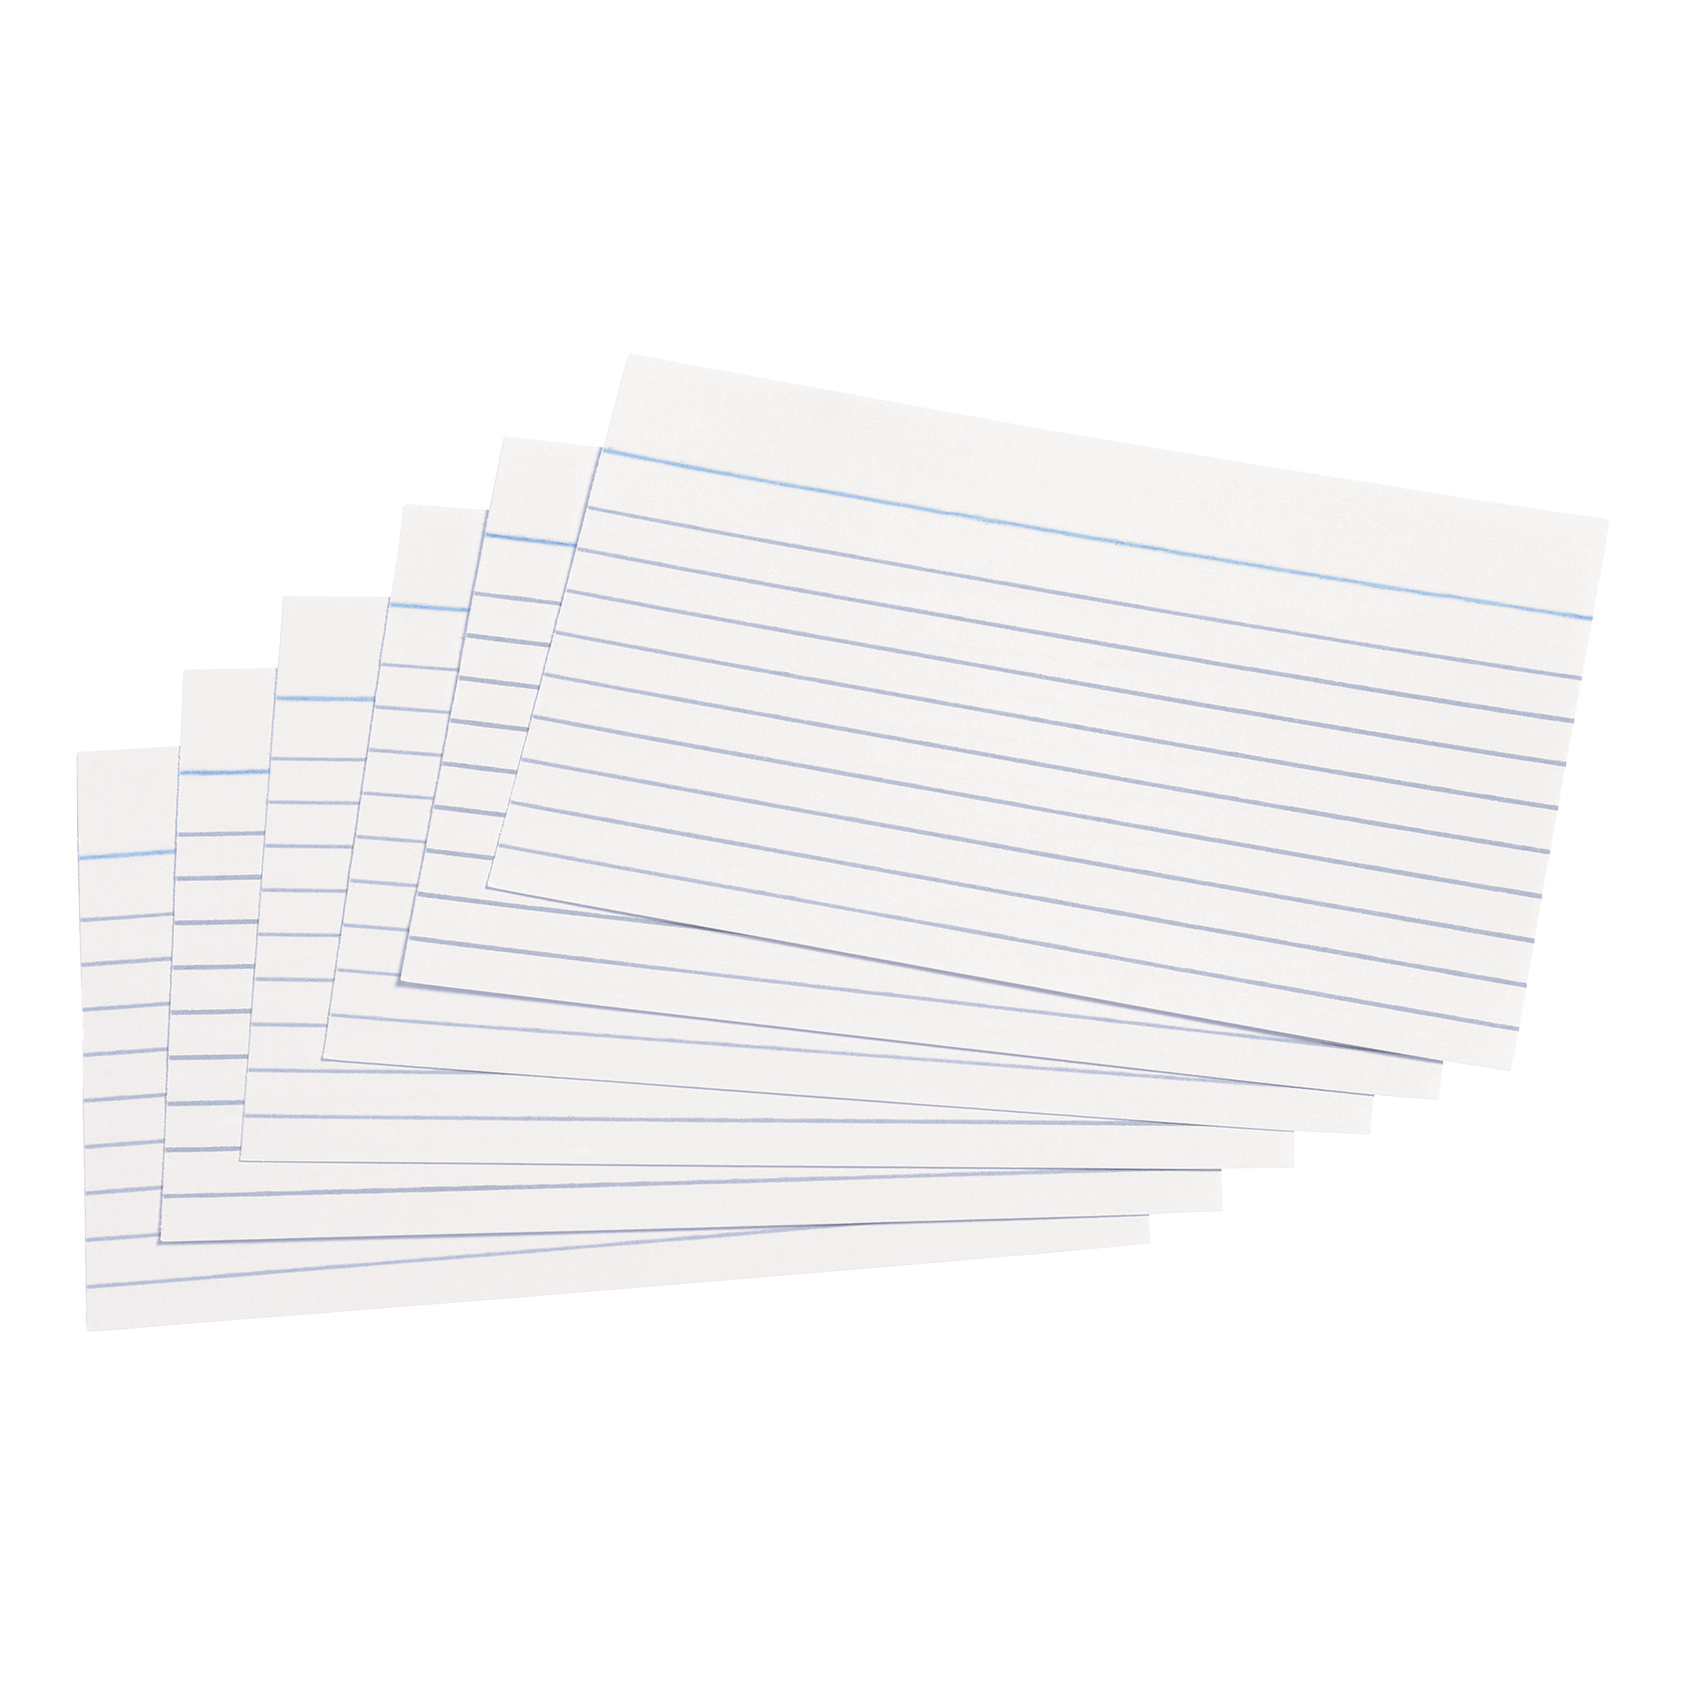 5 Star Office Record Cards Ruled Both Sides 5x3in 127x76mm White Pack 100